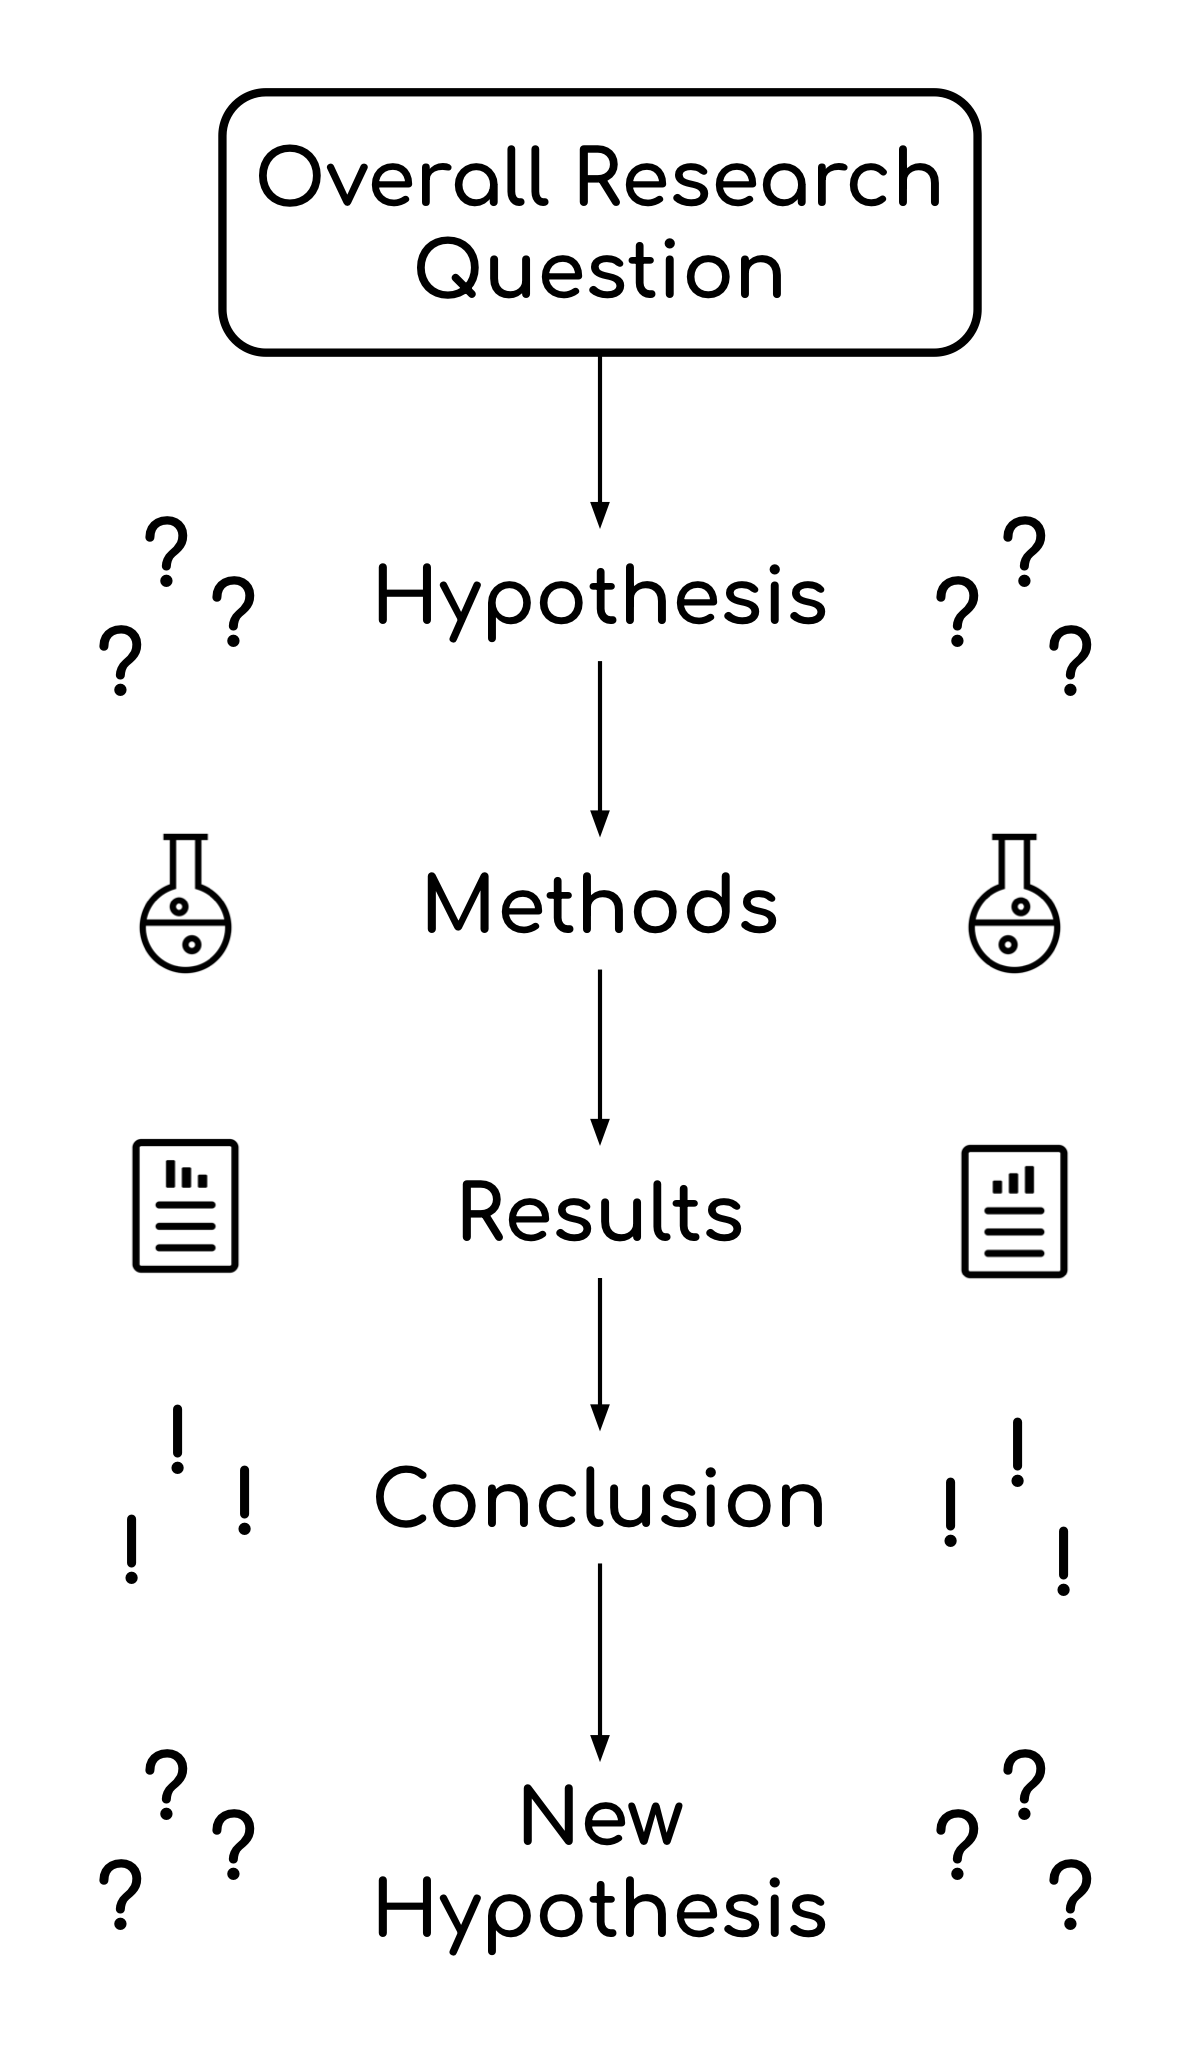 Flow chart representing flow of synthesis map, which goes from overall research question to hypothesis to methods to results to conclusion to new hypothesis.